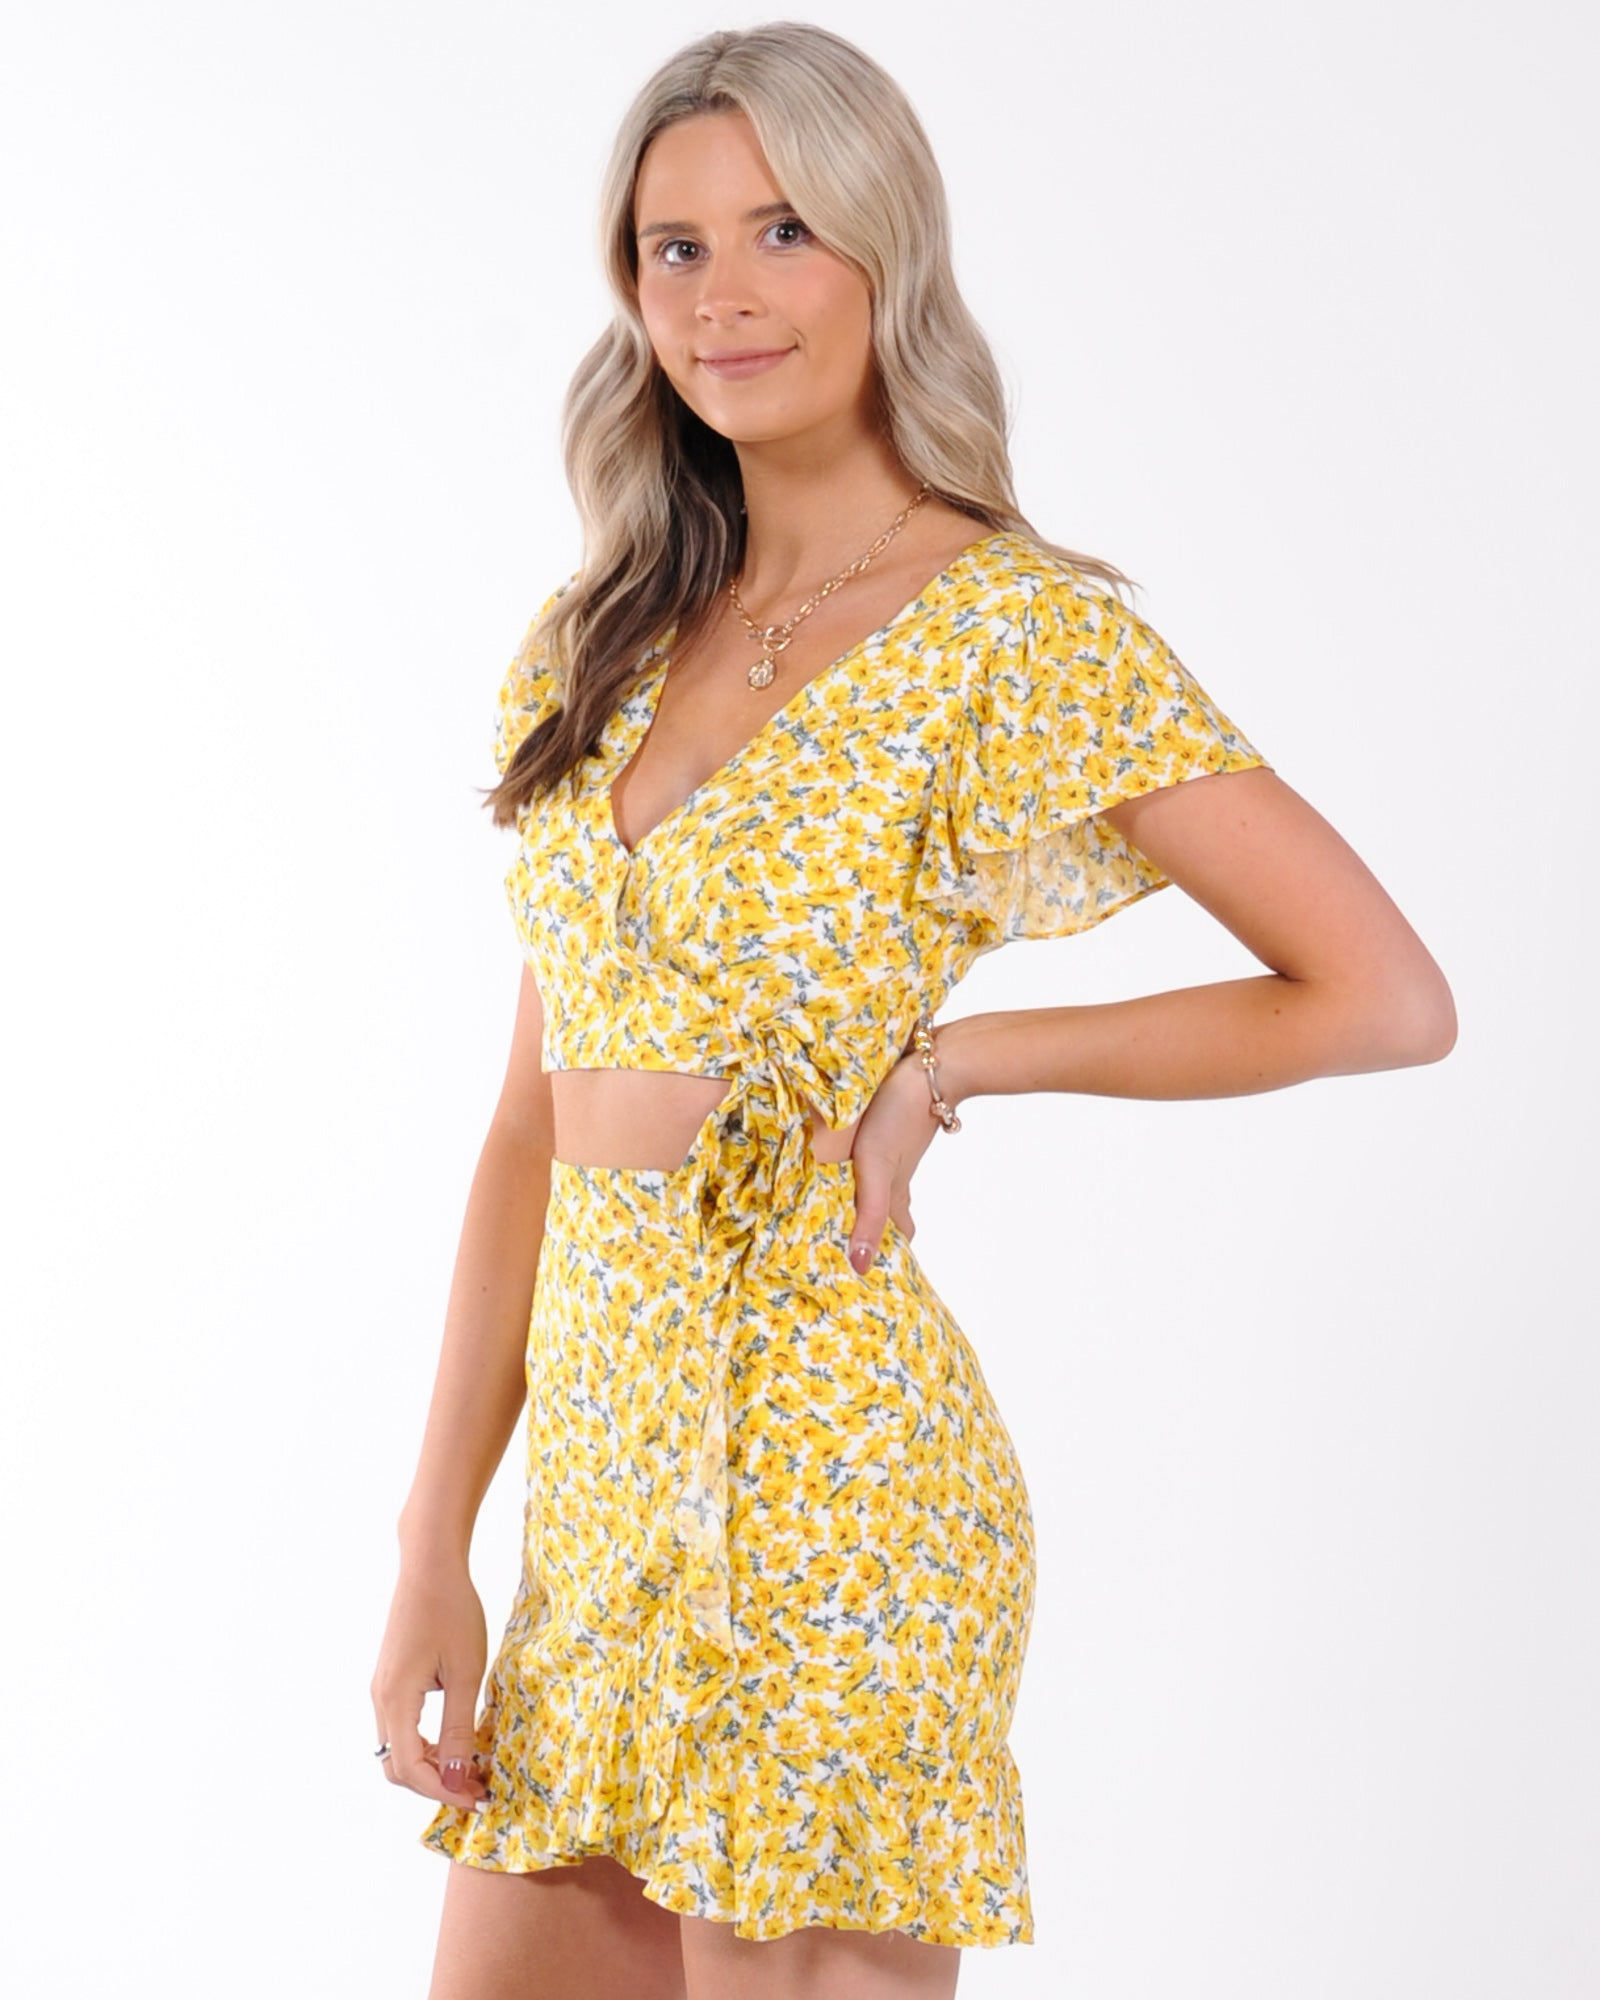 Sunflower Fields Wrap Top - Yellow